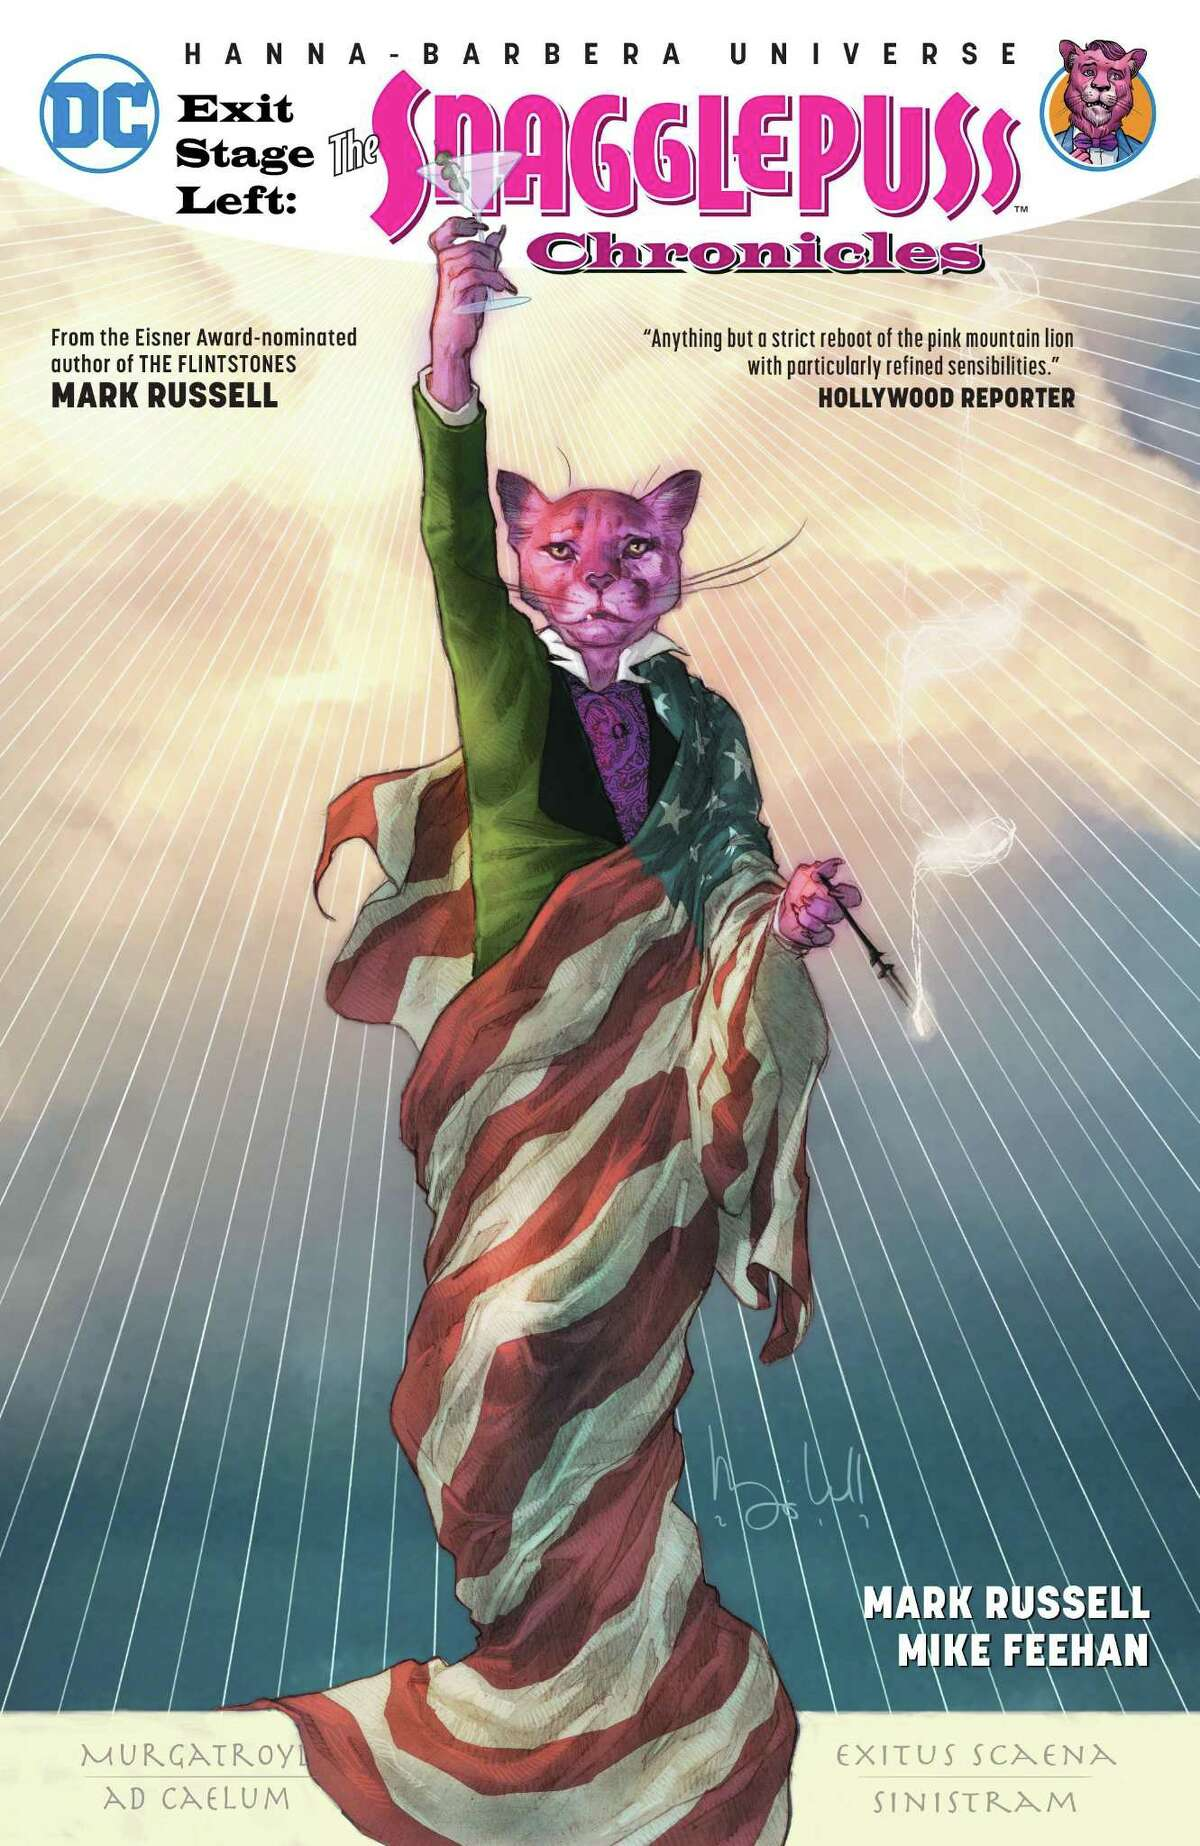 """A cover of the comic book """"The Snagglepuss Chronicles."""""""